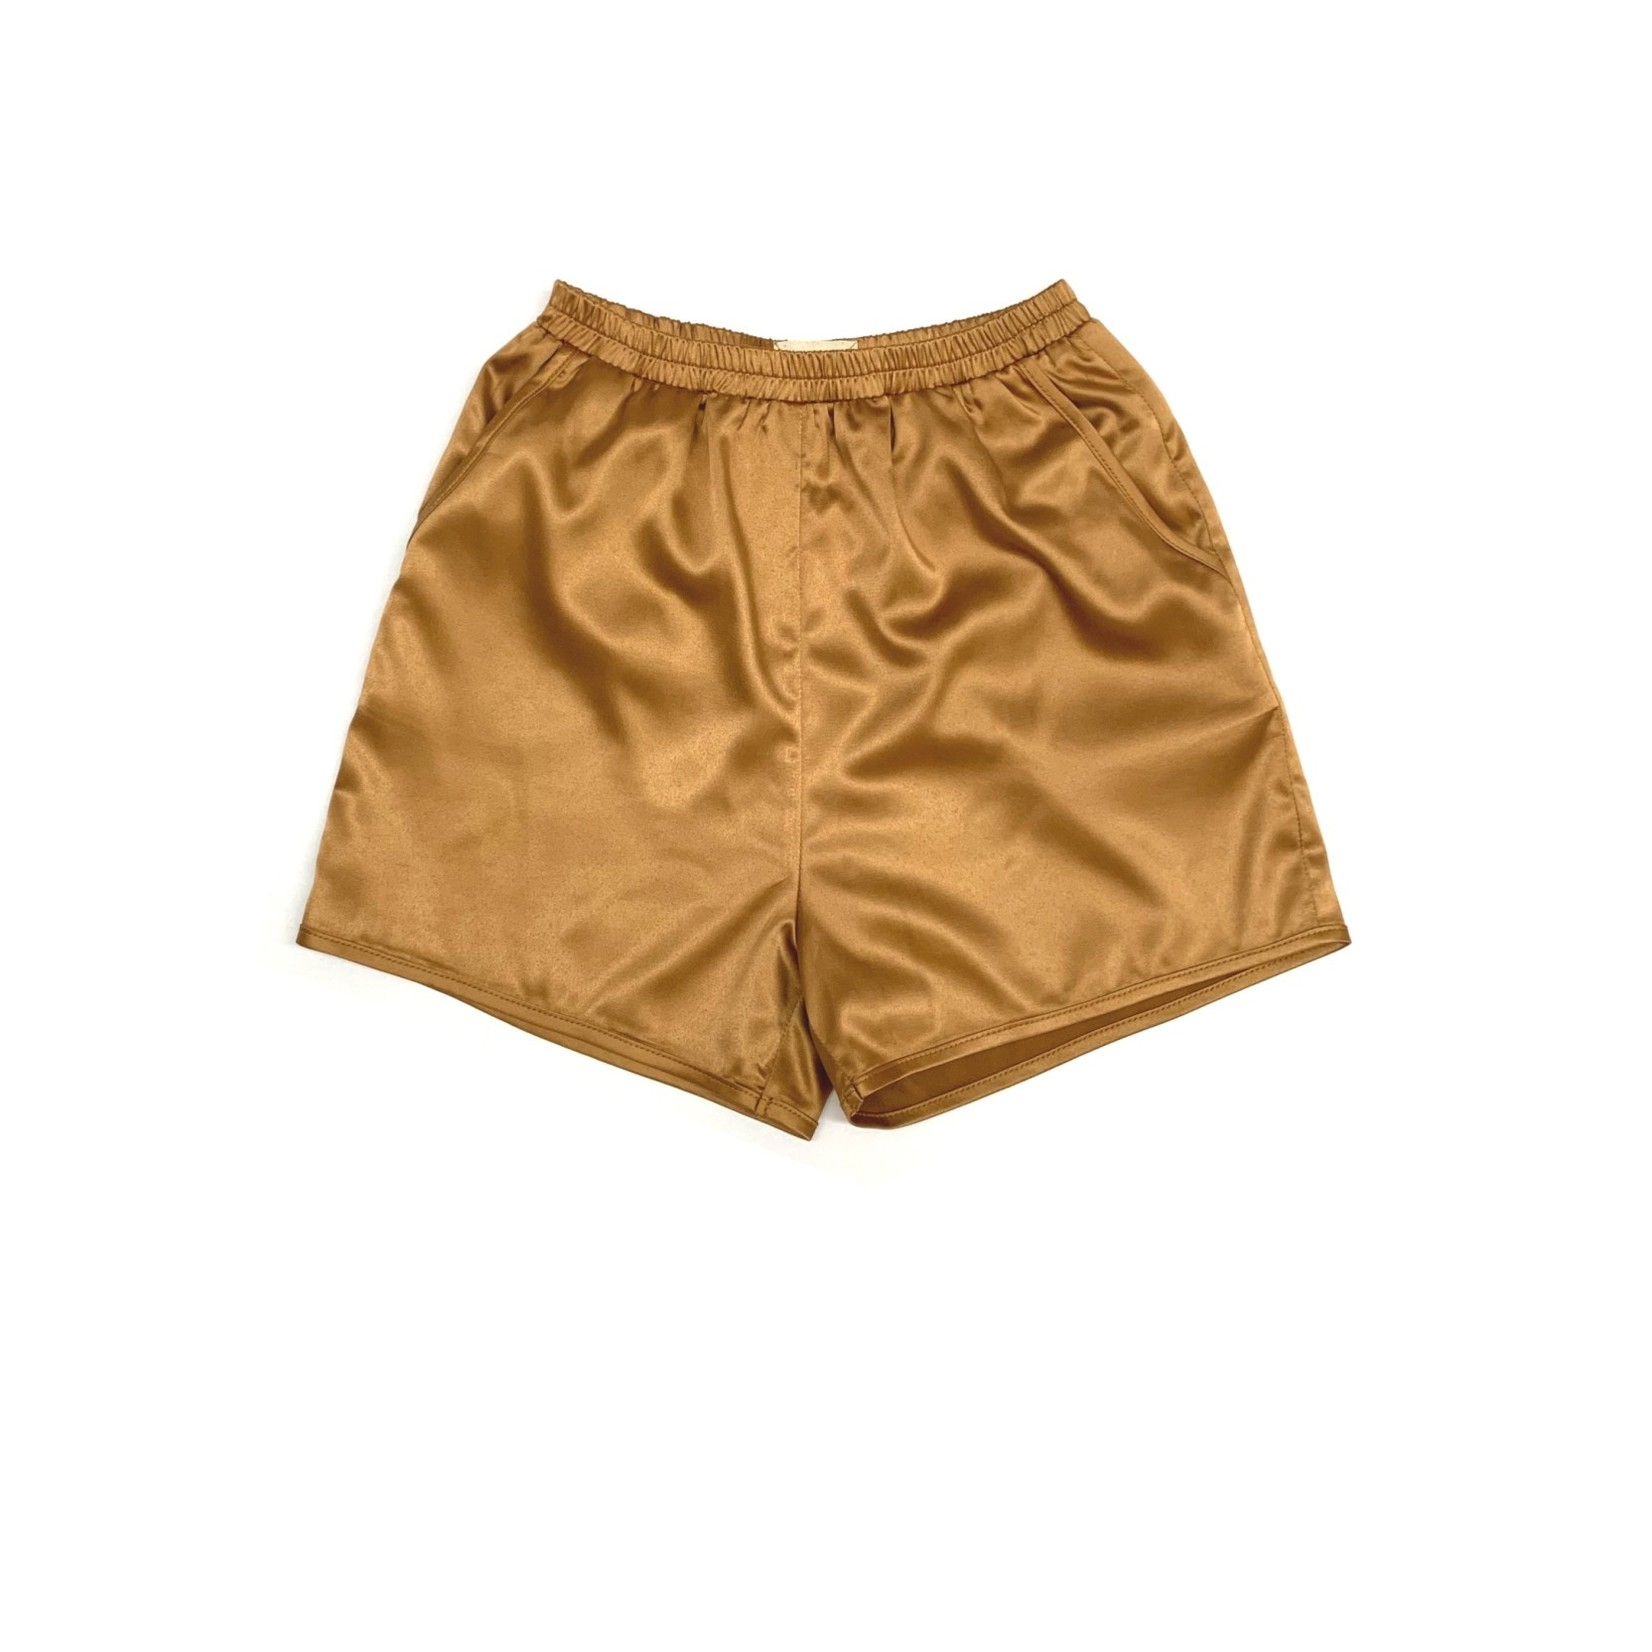 LONG LIVE THE QUEEN Long live the queen satin shorts